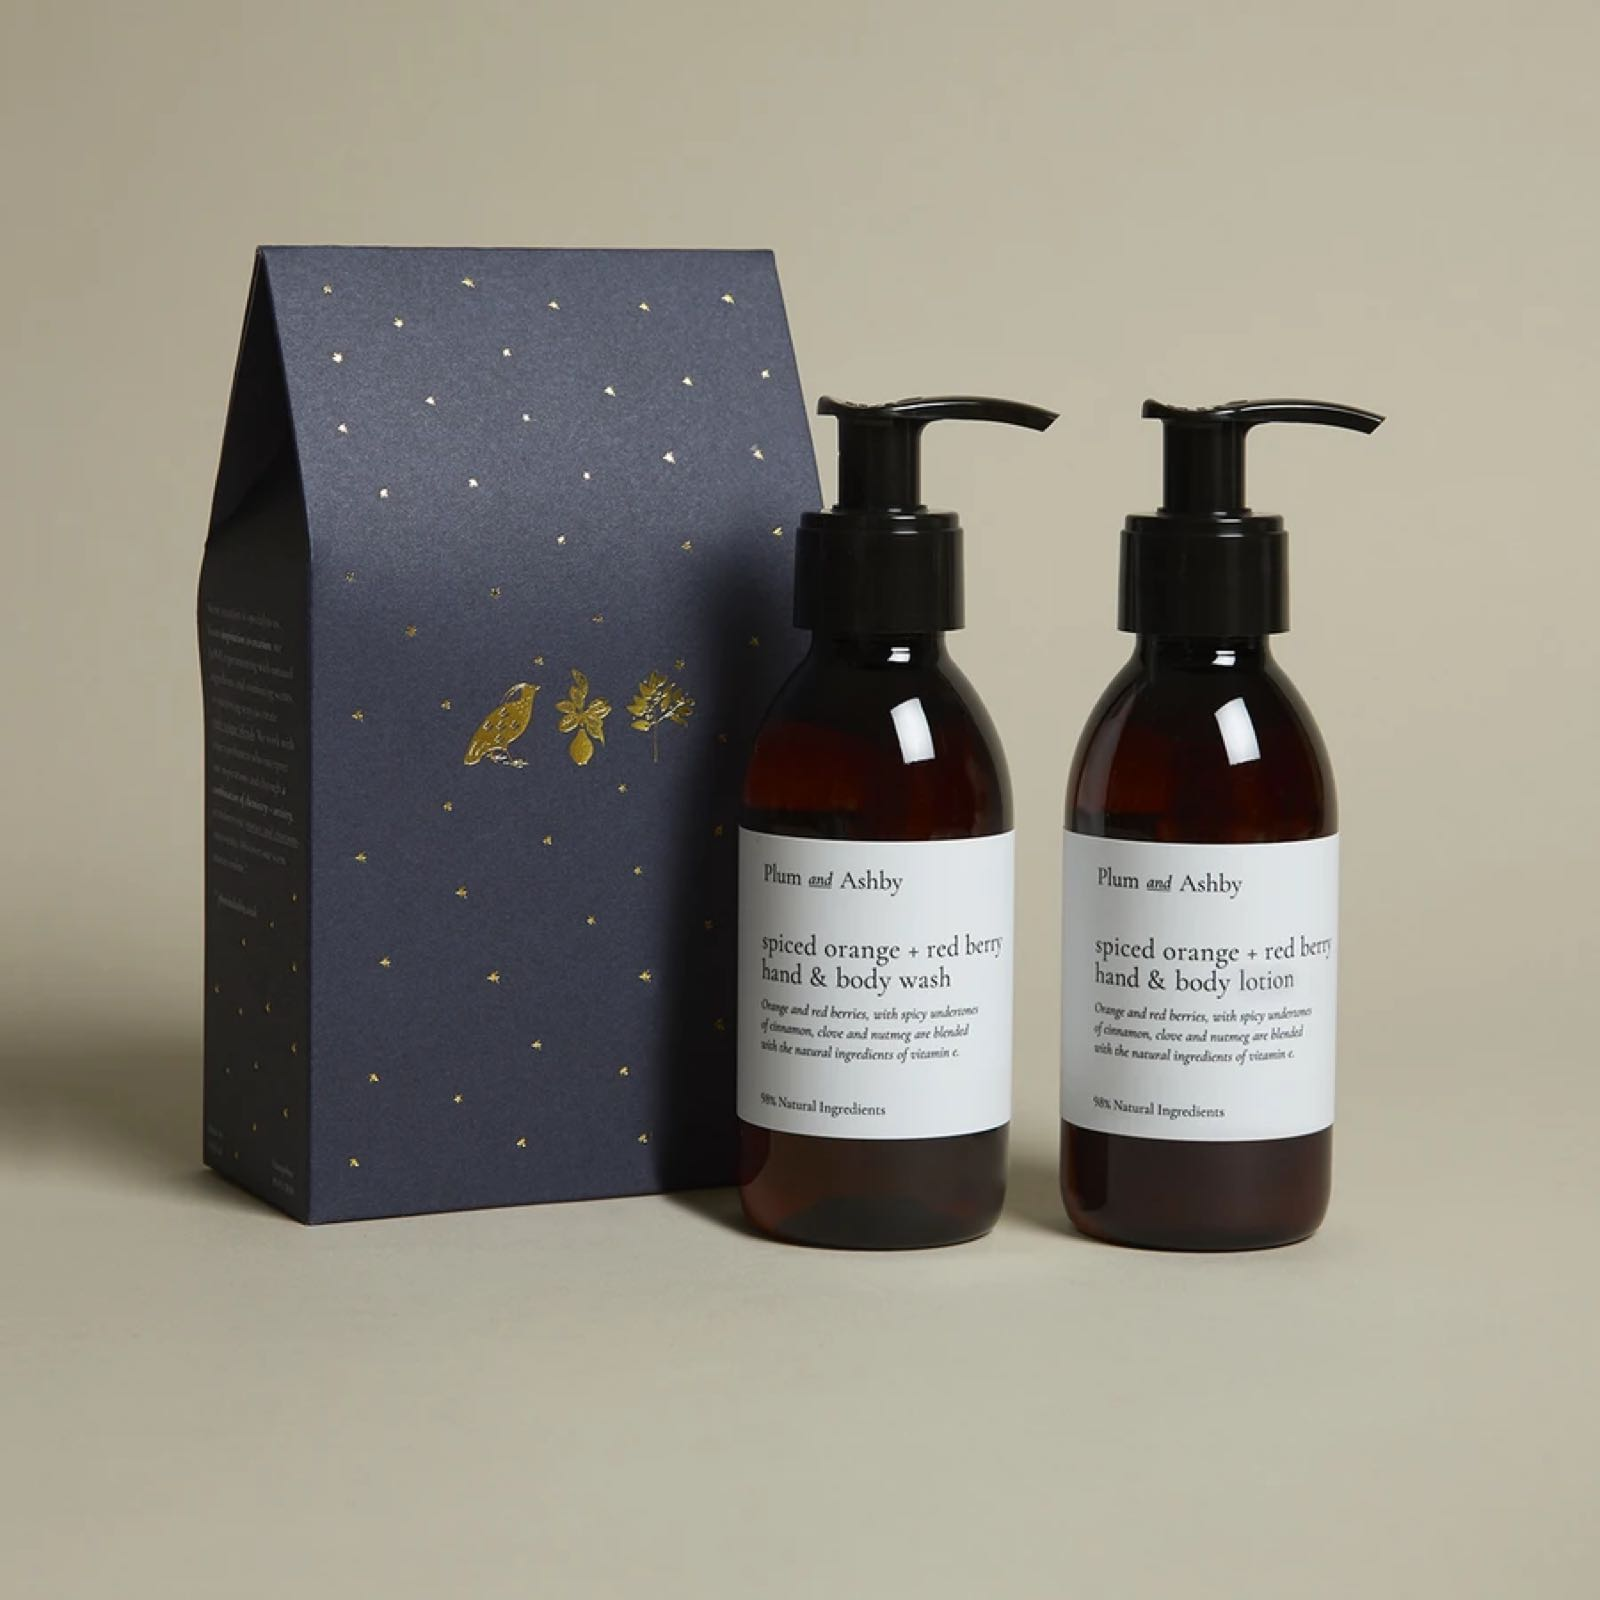 Plum & Ashby spiced orange and red berry wash and lotion gift set